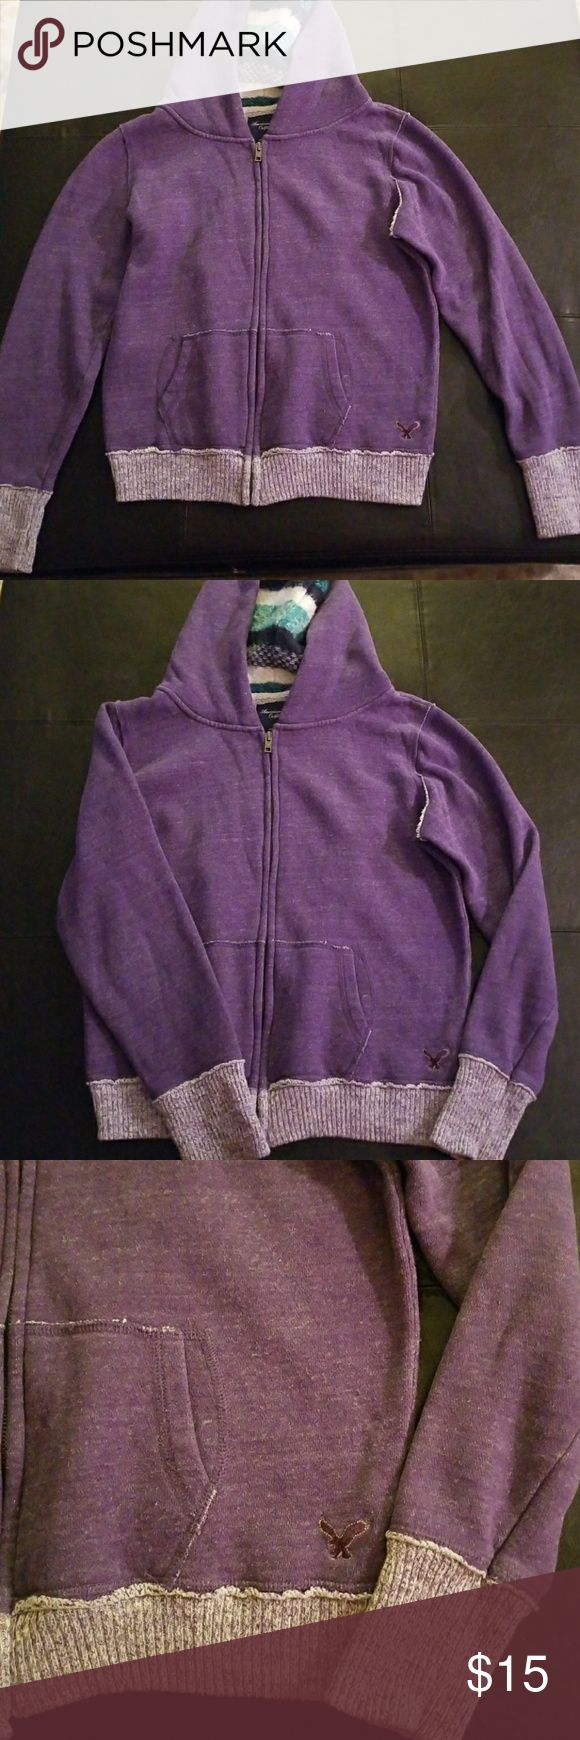 American Eagle Purple Zip Up Hoodie Sweater Purple American Eagle Outfitters zip up hoodie sweater. Striped detailed knit hood. Excellent used condition. Size Medium. American Eagle Outfitters Sweaters